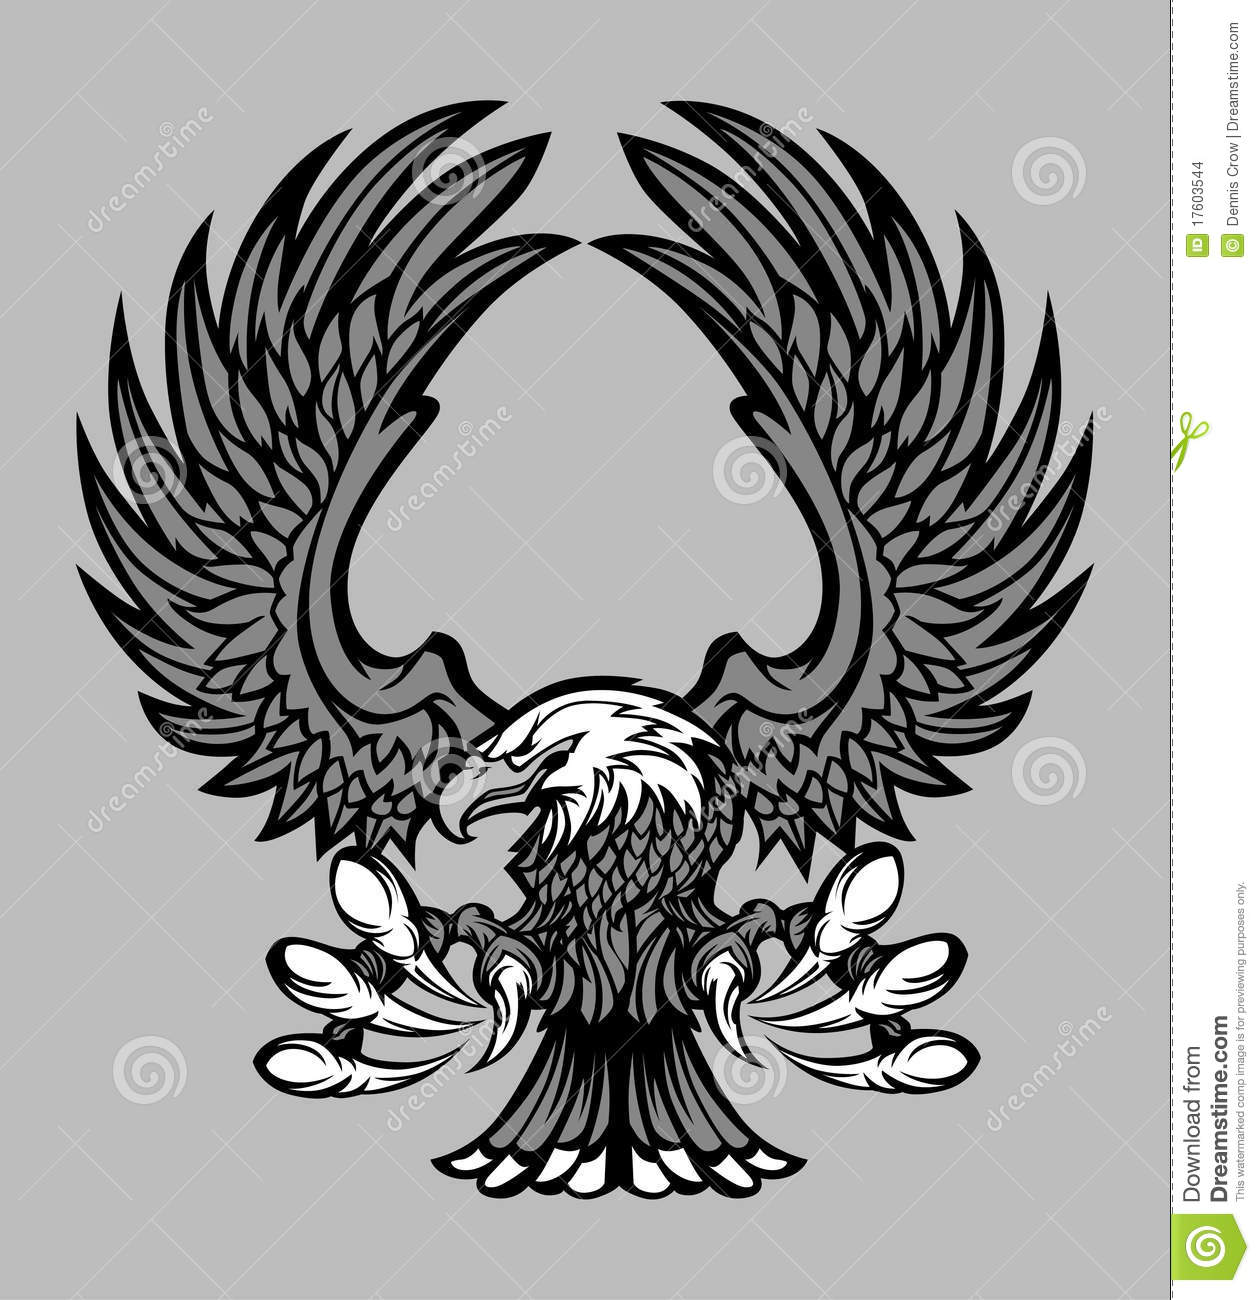 Mascot Vector Eagle wings  Eagle Wings Logo Png